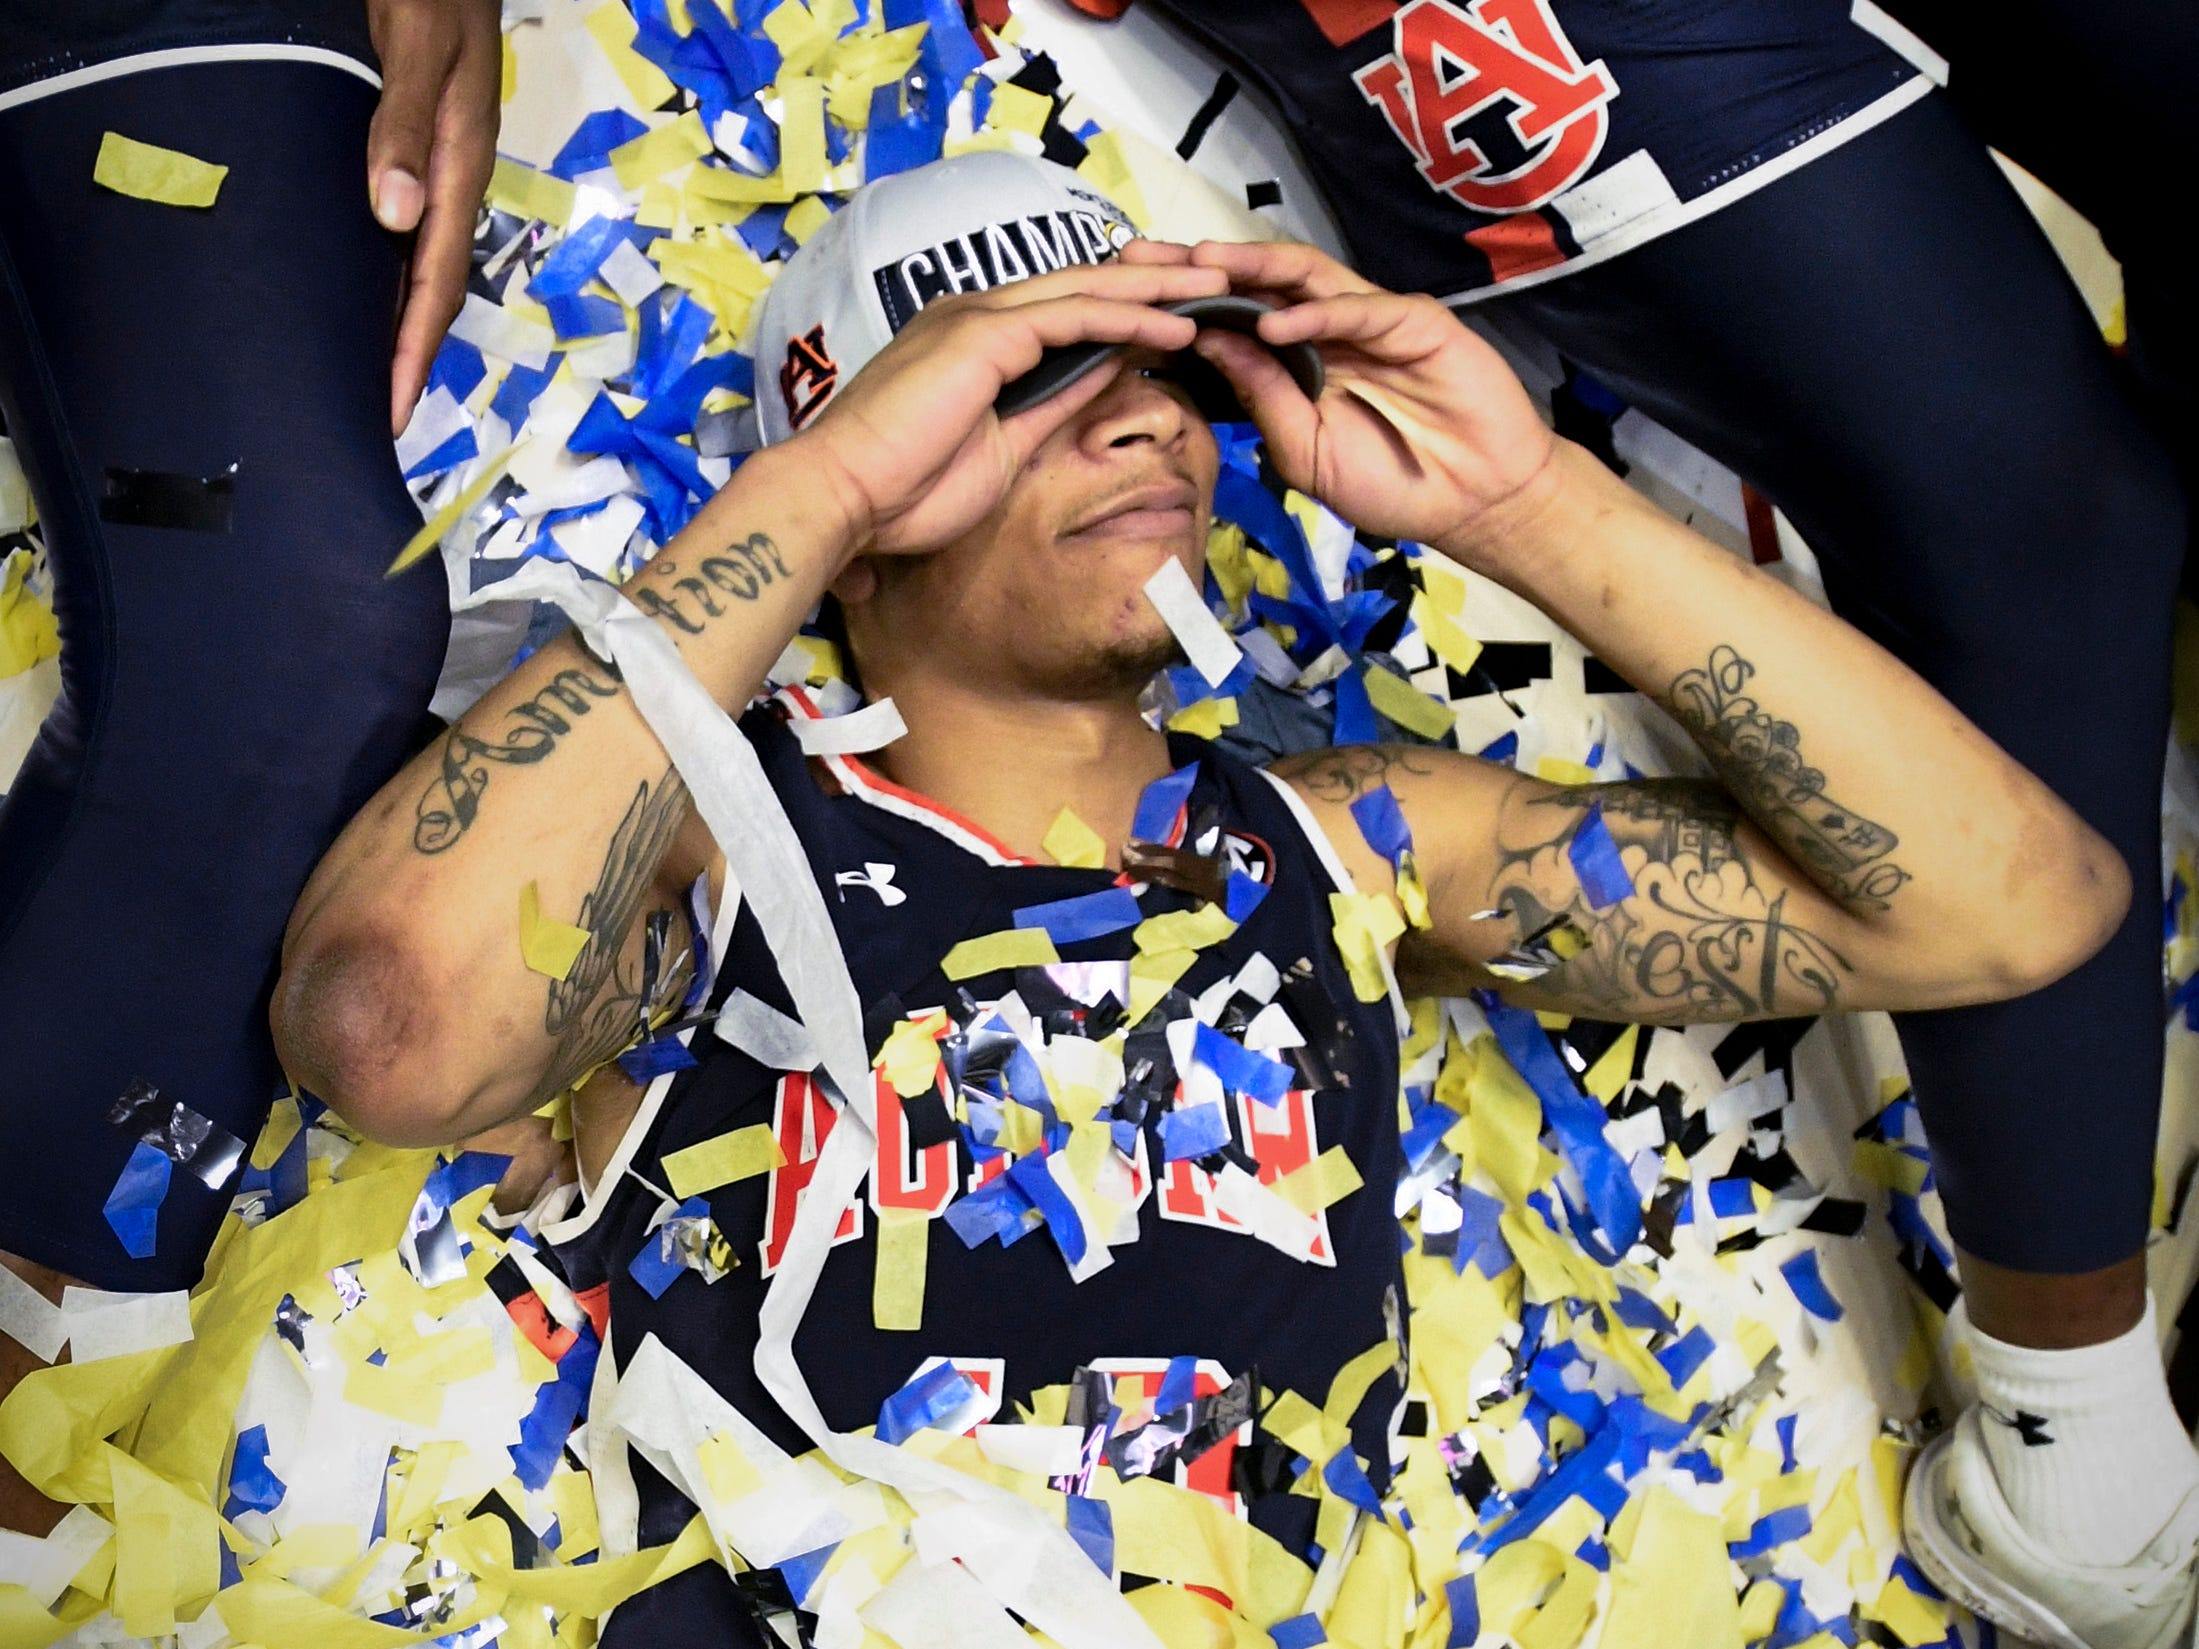 Auburn guard Samir Doughty (10) celebrates after their SEC Men's Basketball Tournament championship victory against Tennessee at Bridgestone Arena in Nashville, Tenn., Sunday, March 17, 2019.